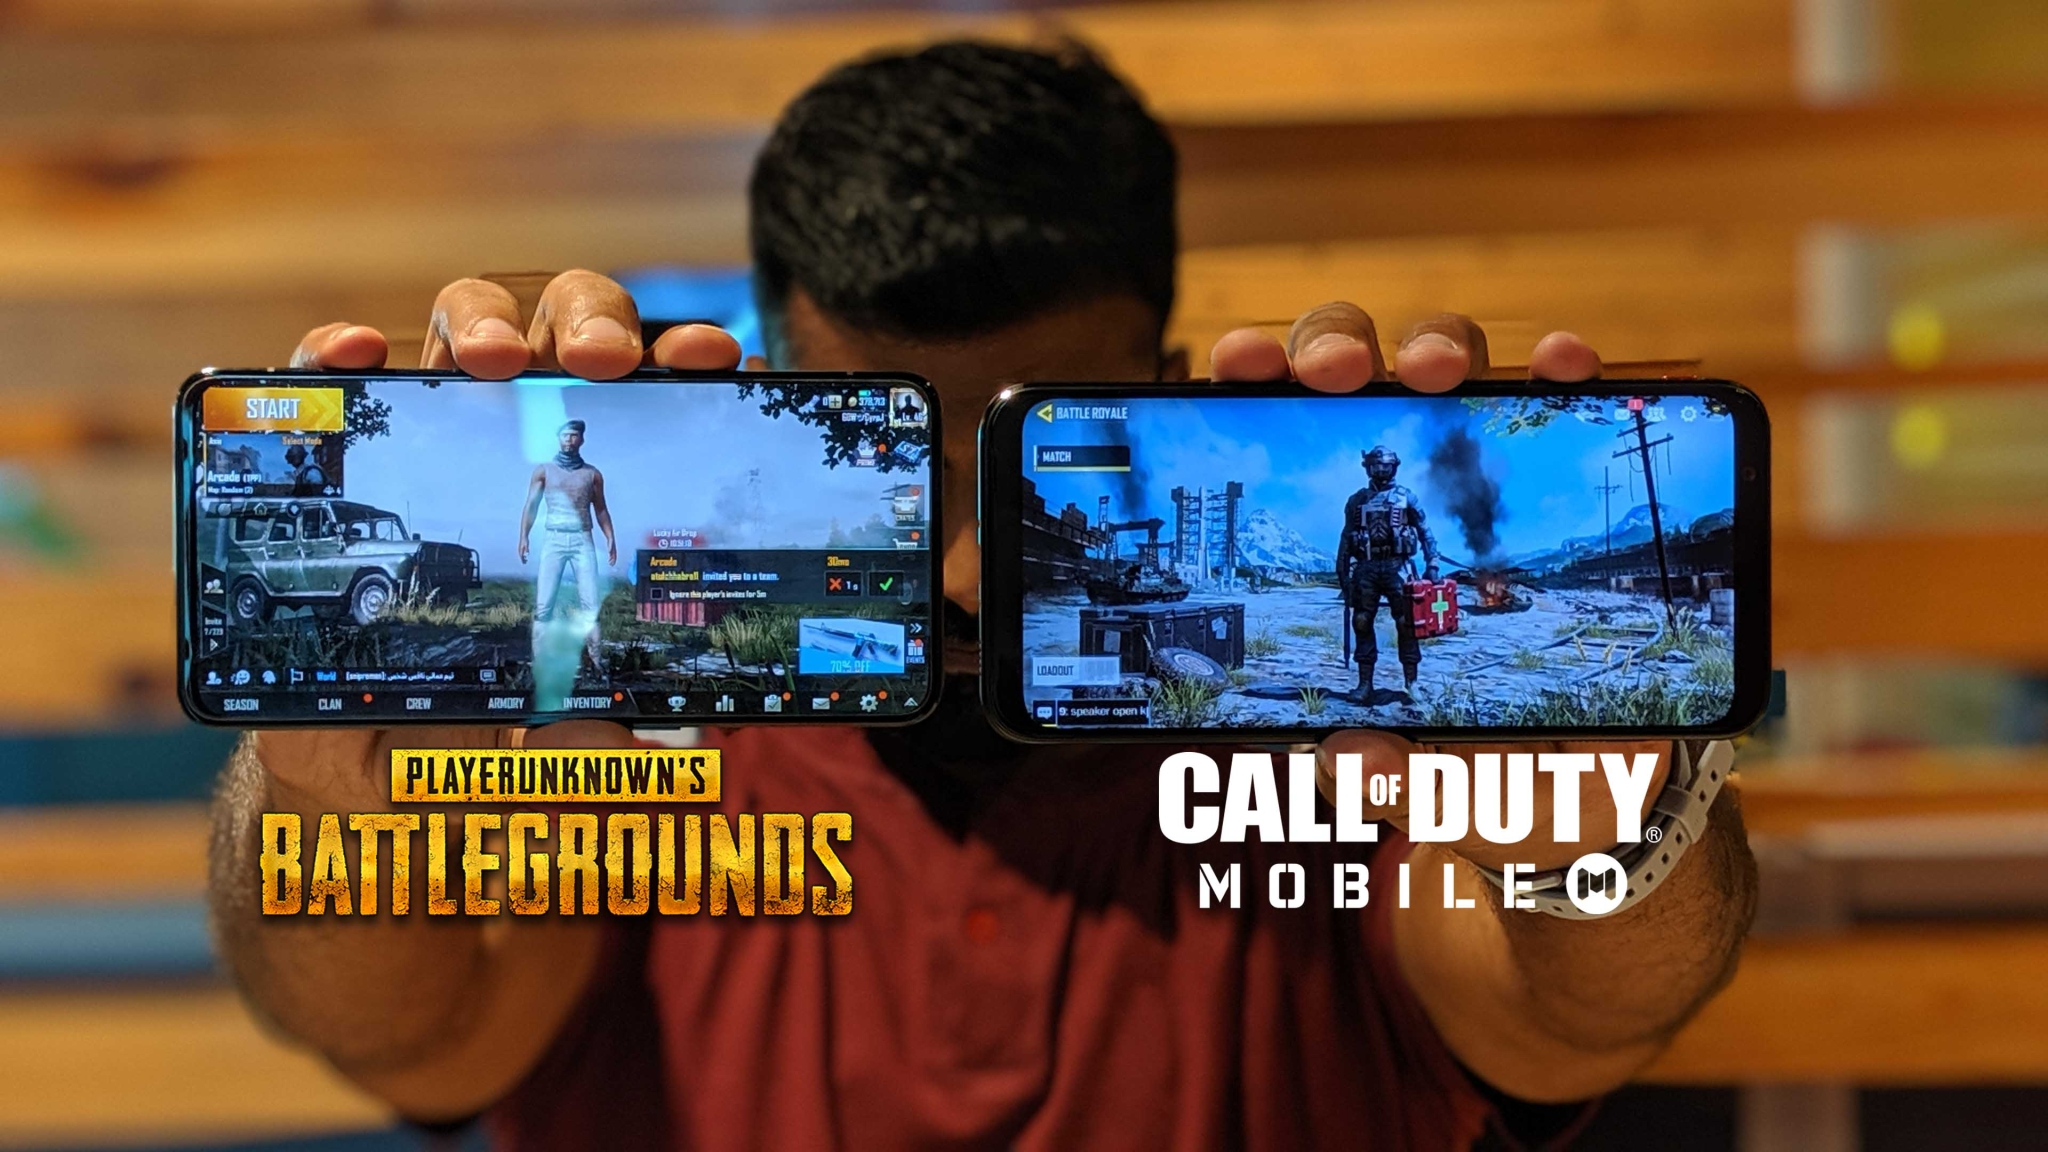 Call of Duty Mobile vs PUBG Mobile: The Ultimate Multiplayer Game?